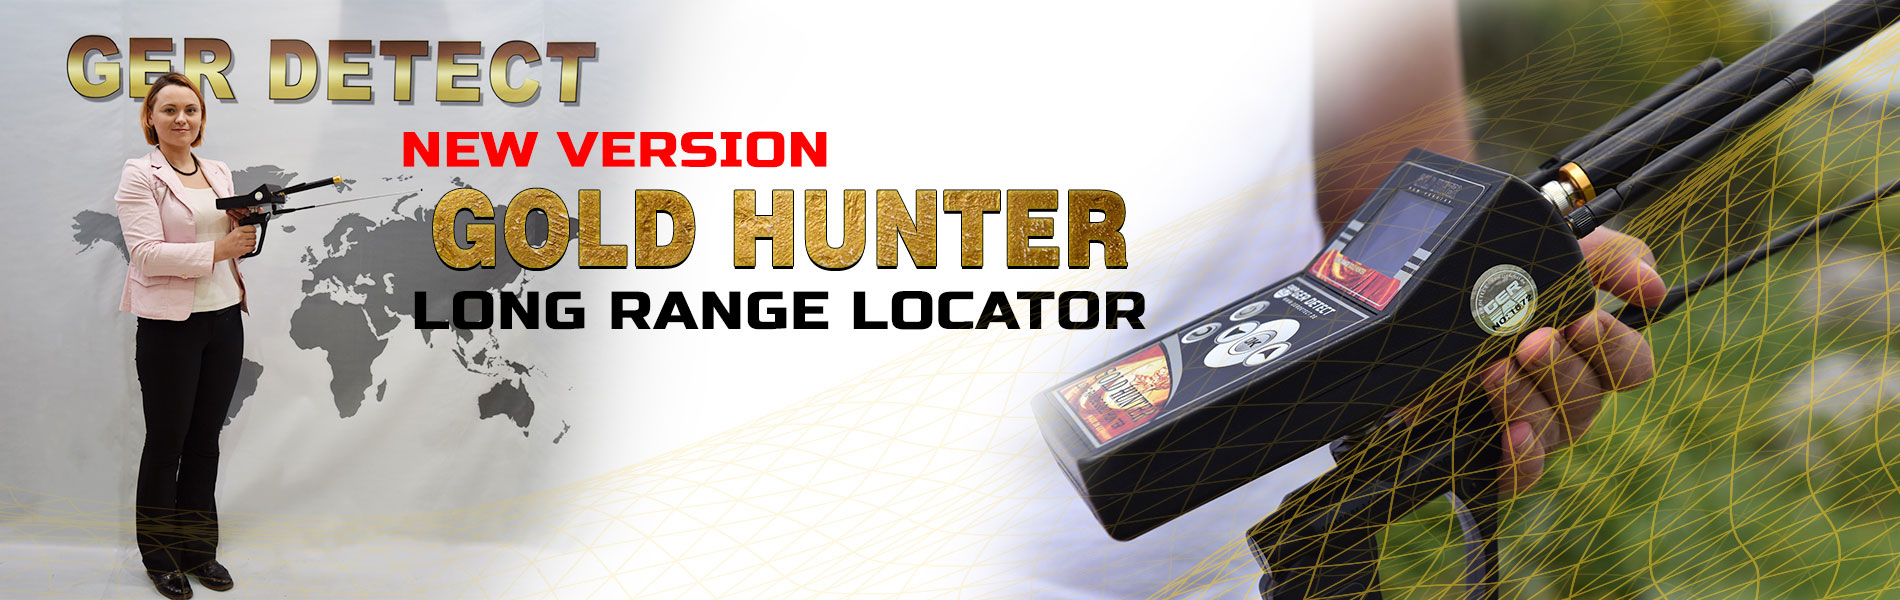 gold-hunter-gold-detector